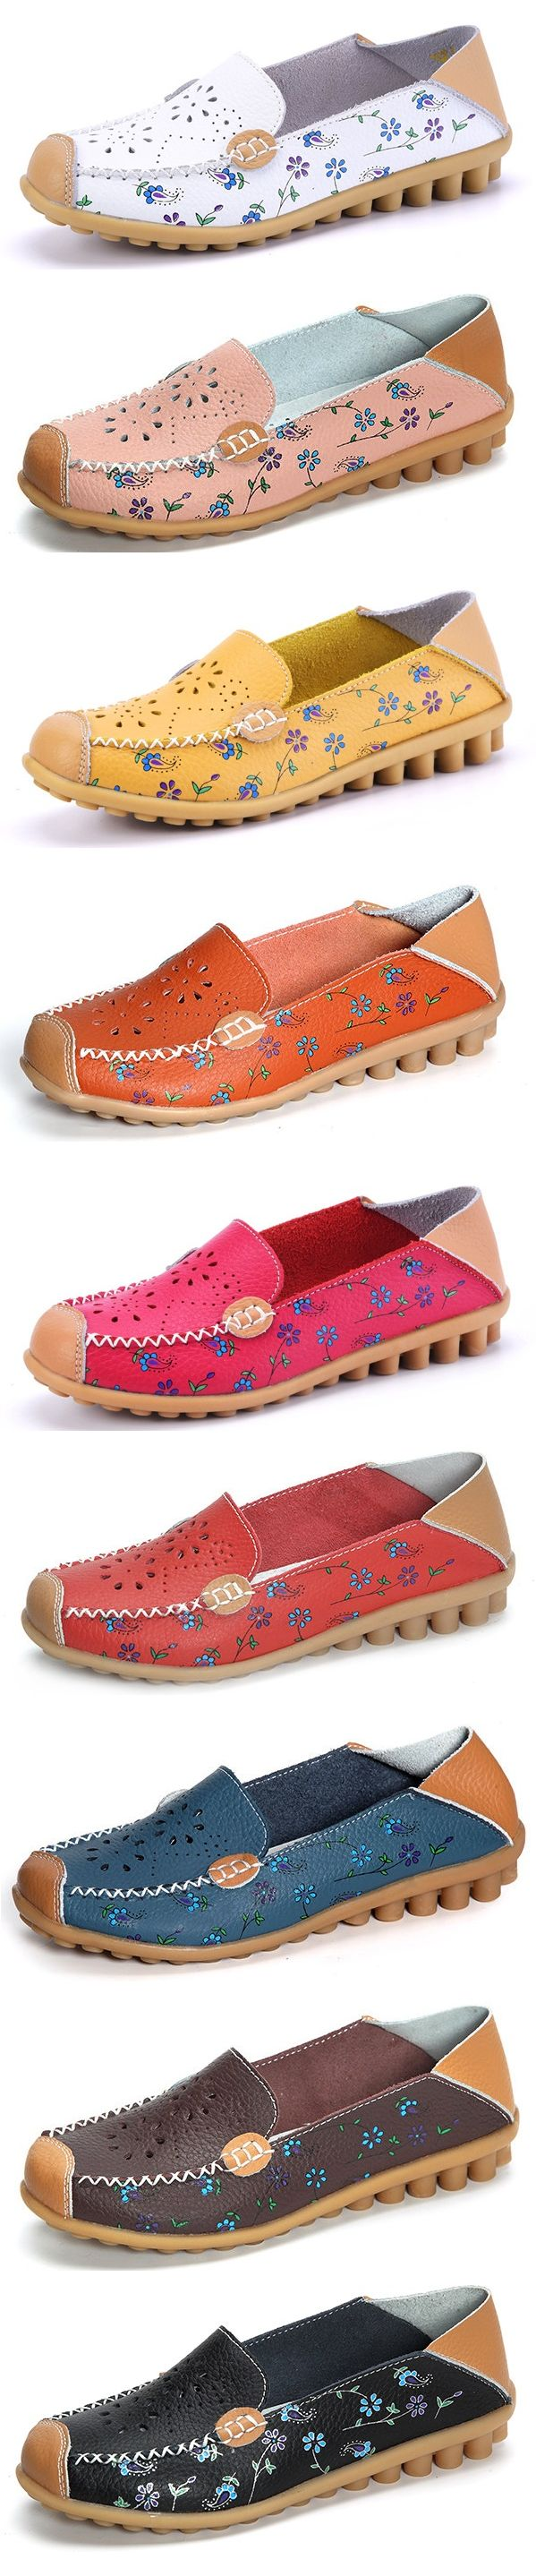 US$16.07 Floral Print Hollow Out Breathable Color Match Casual Slip On Flat Shoes